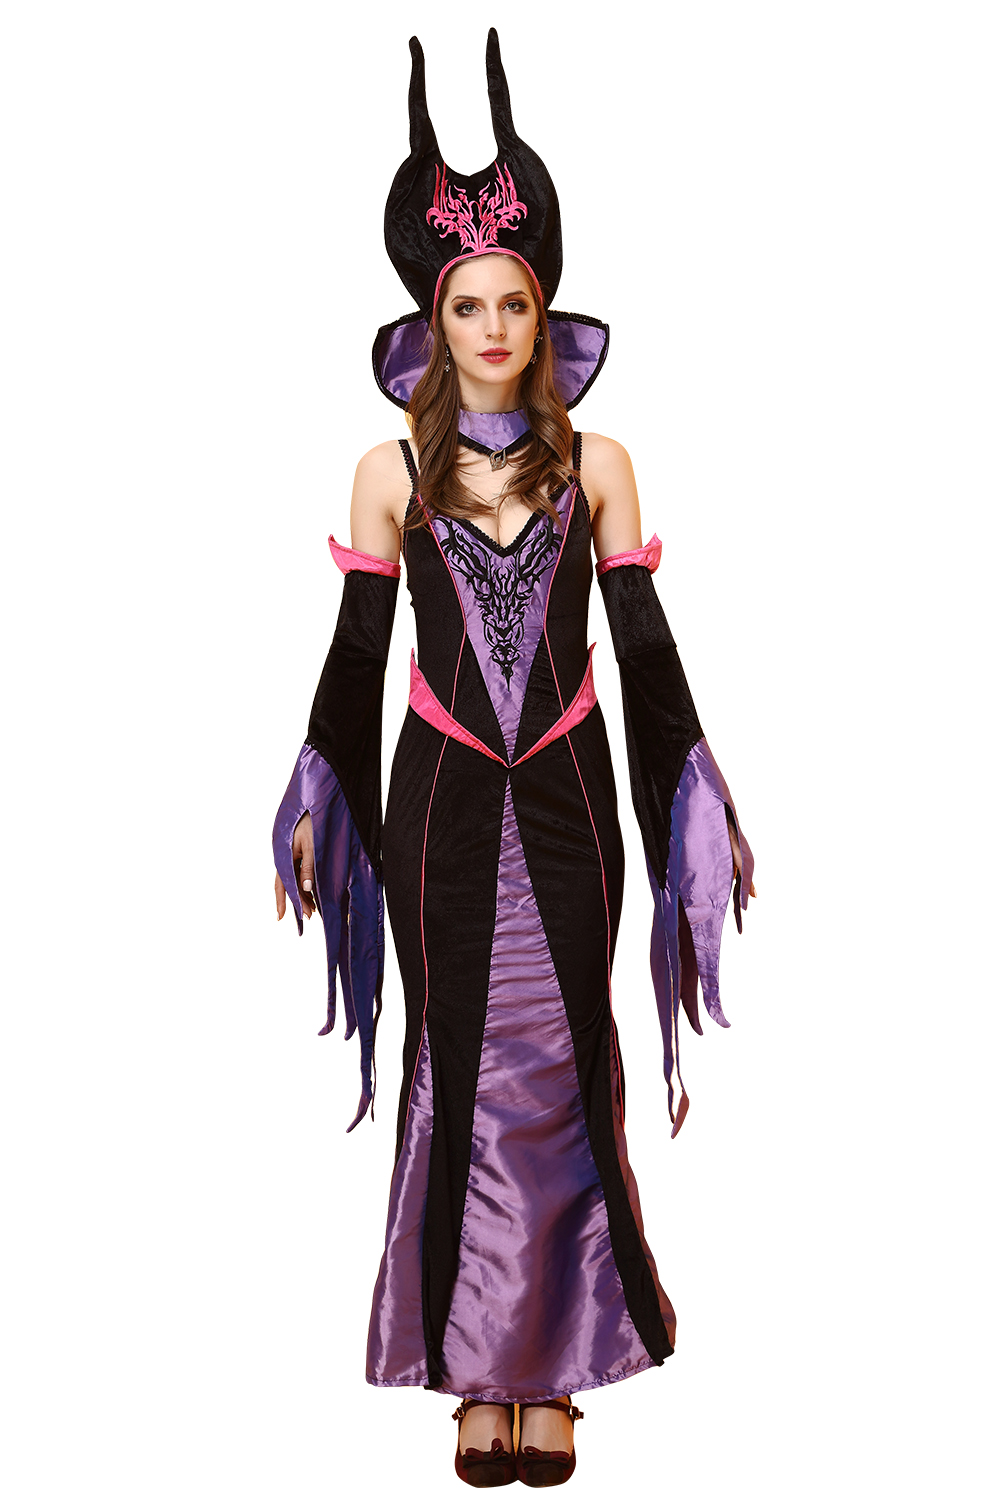 Adults Halloween Costumes For Women Witch Cosplay Disfraces Adultos Movie Maleficent Costume Disfraz Mujer Black Dress EU958